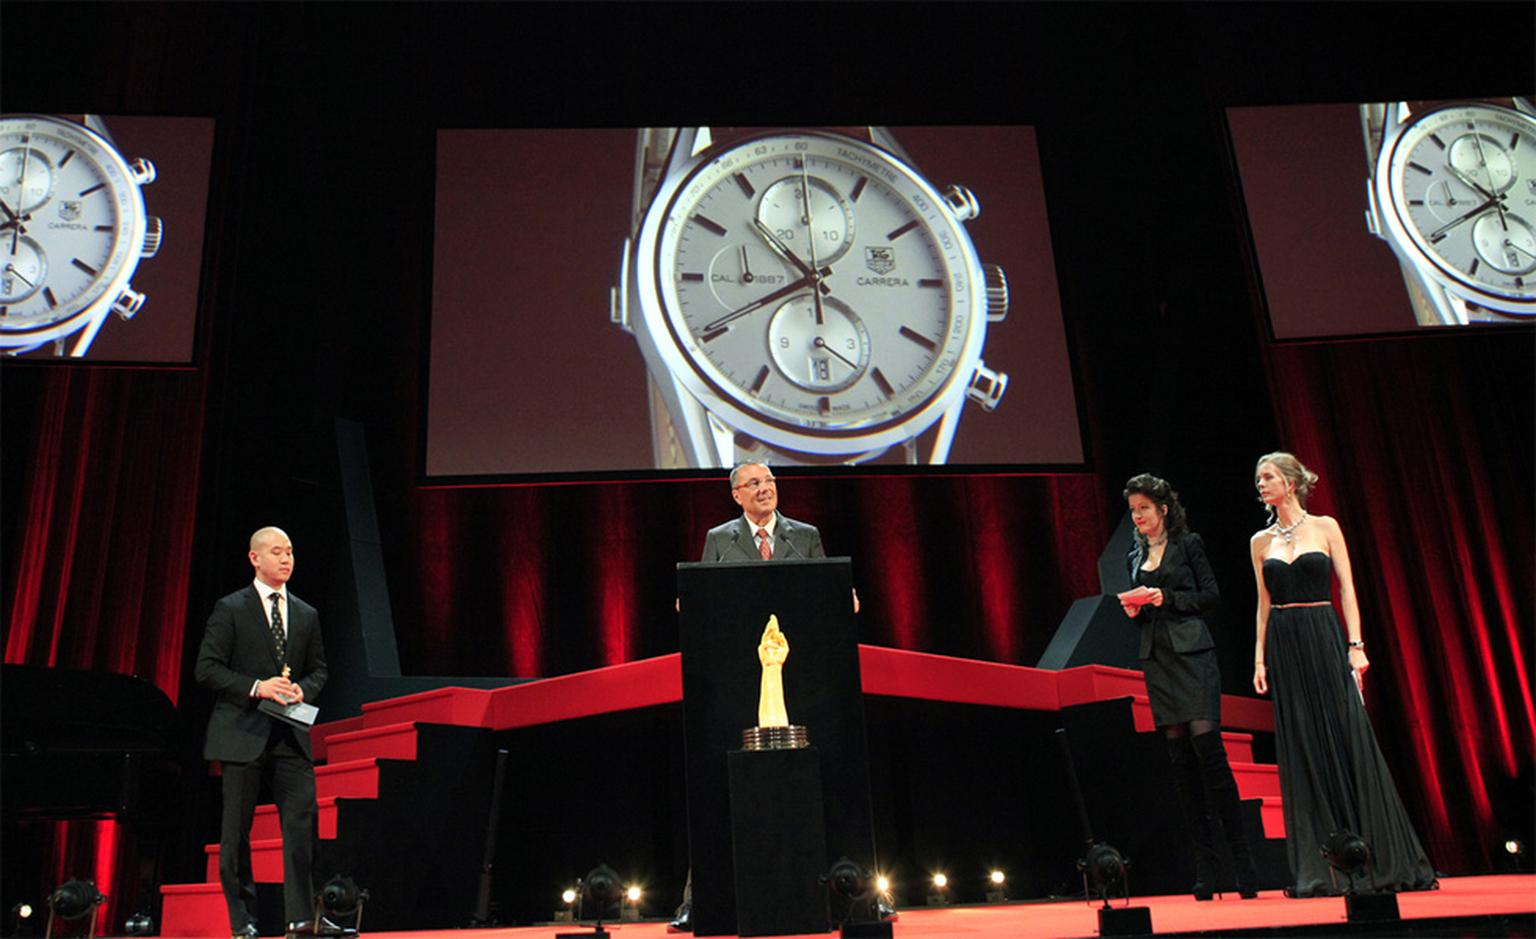 Jean-Christophe Babin, CEO of TAG Heuer speech at Gran Prix de l'Horlogerie 2010